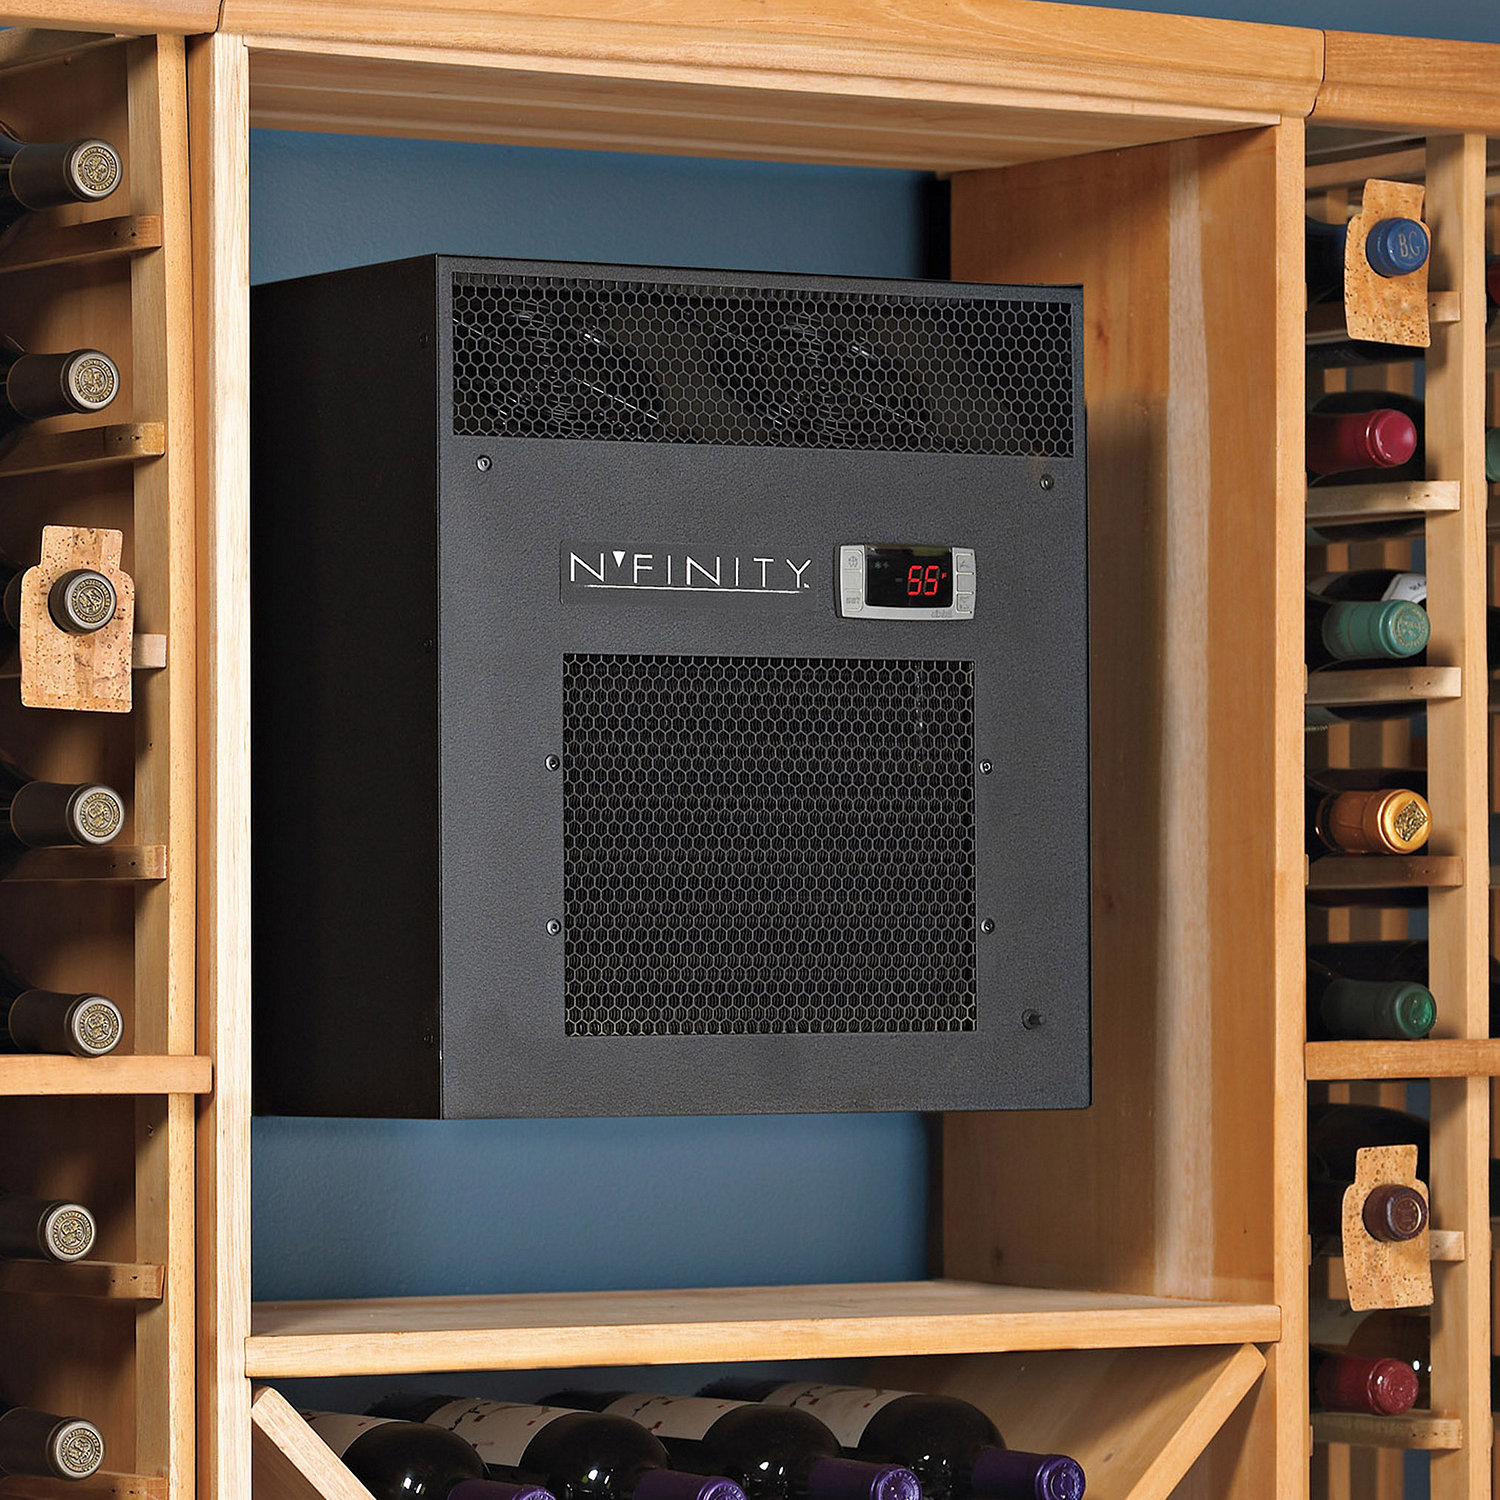 Nfinity 3000 Wine Cellar Cooling Unit Max Room Size 650 Cu Ft